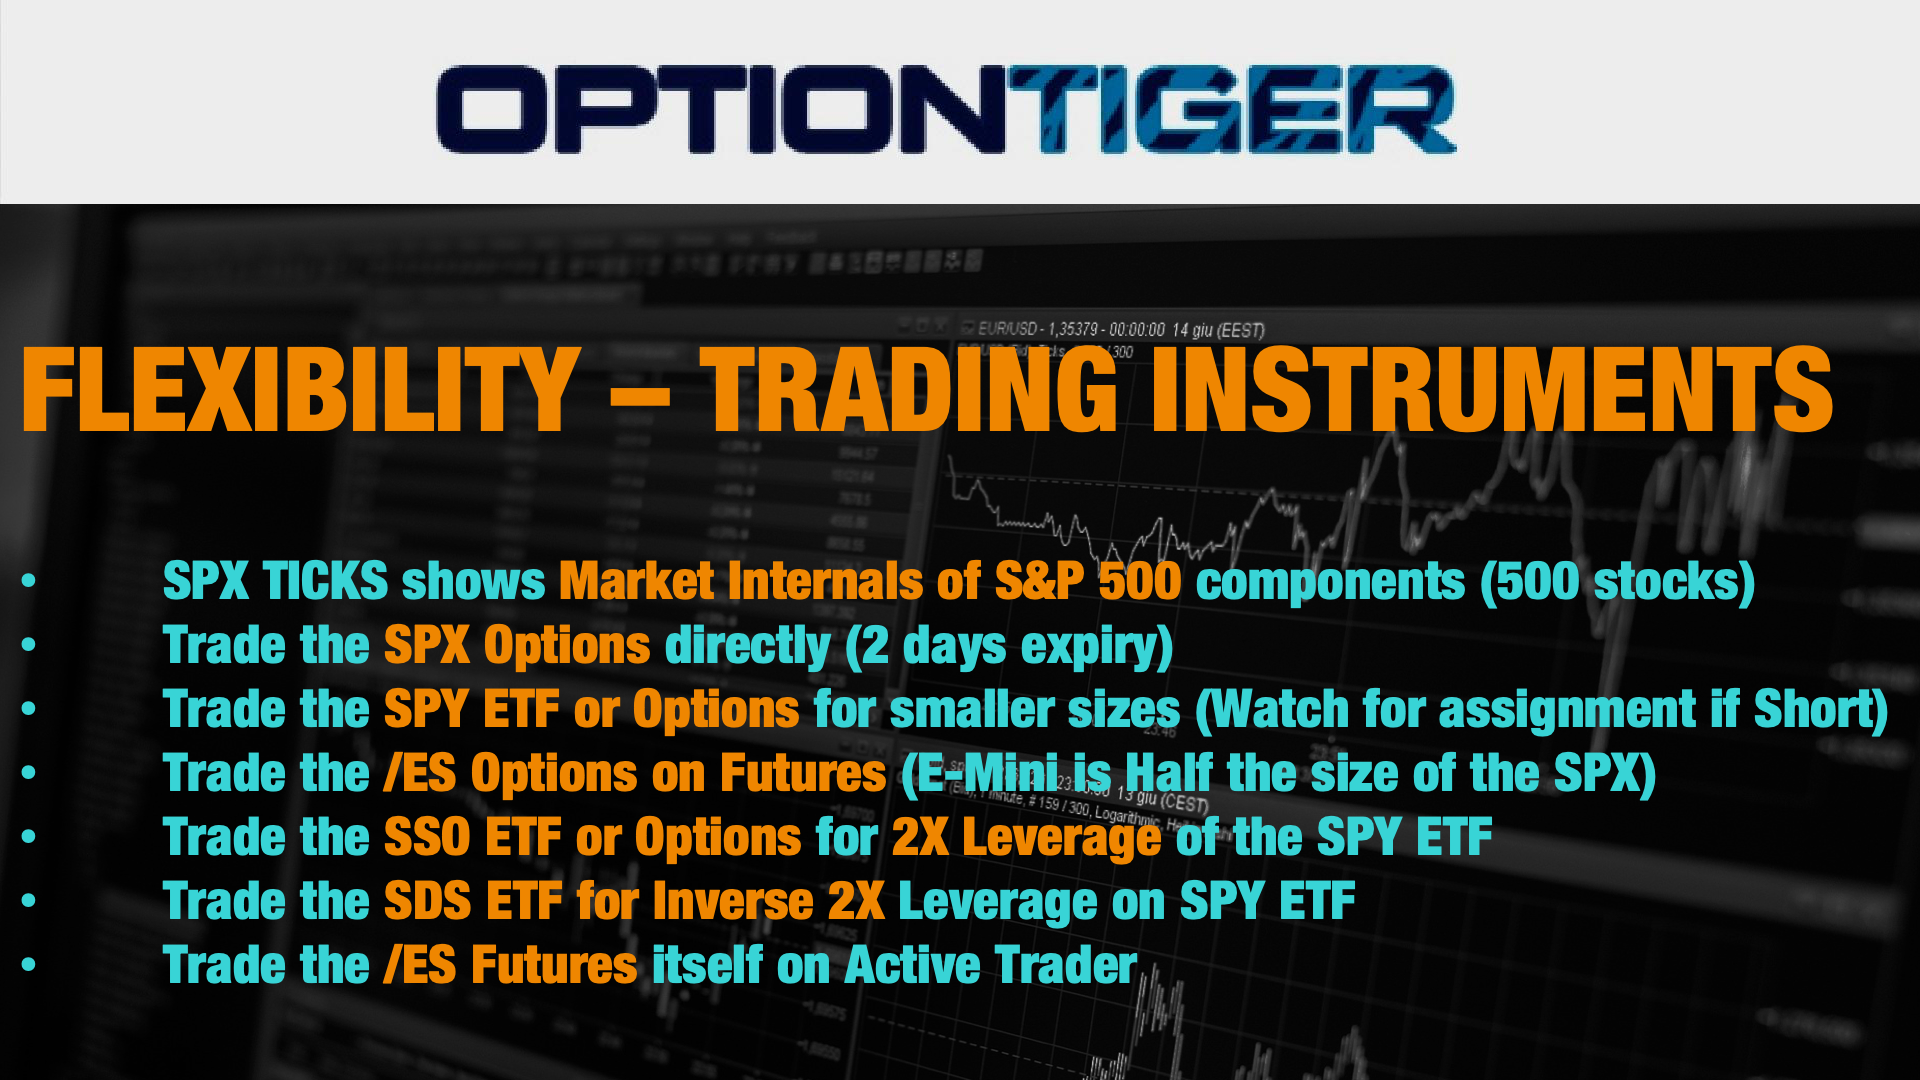 SPX Intraday trading instruments